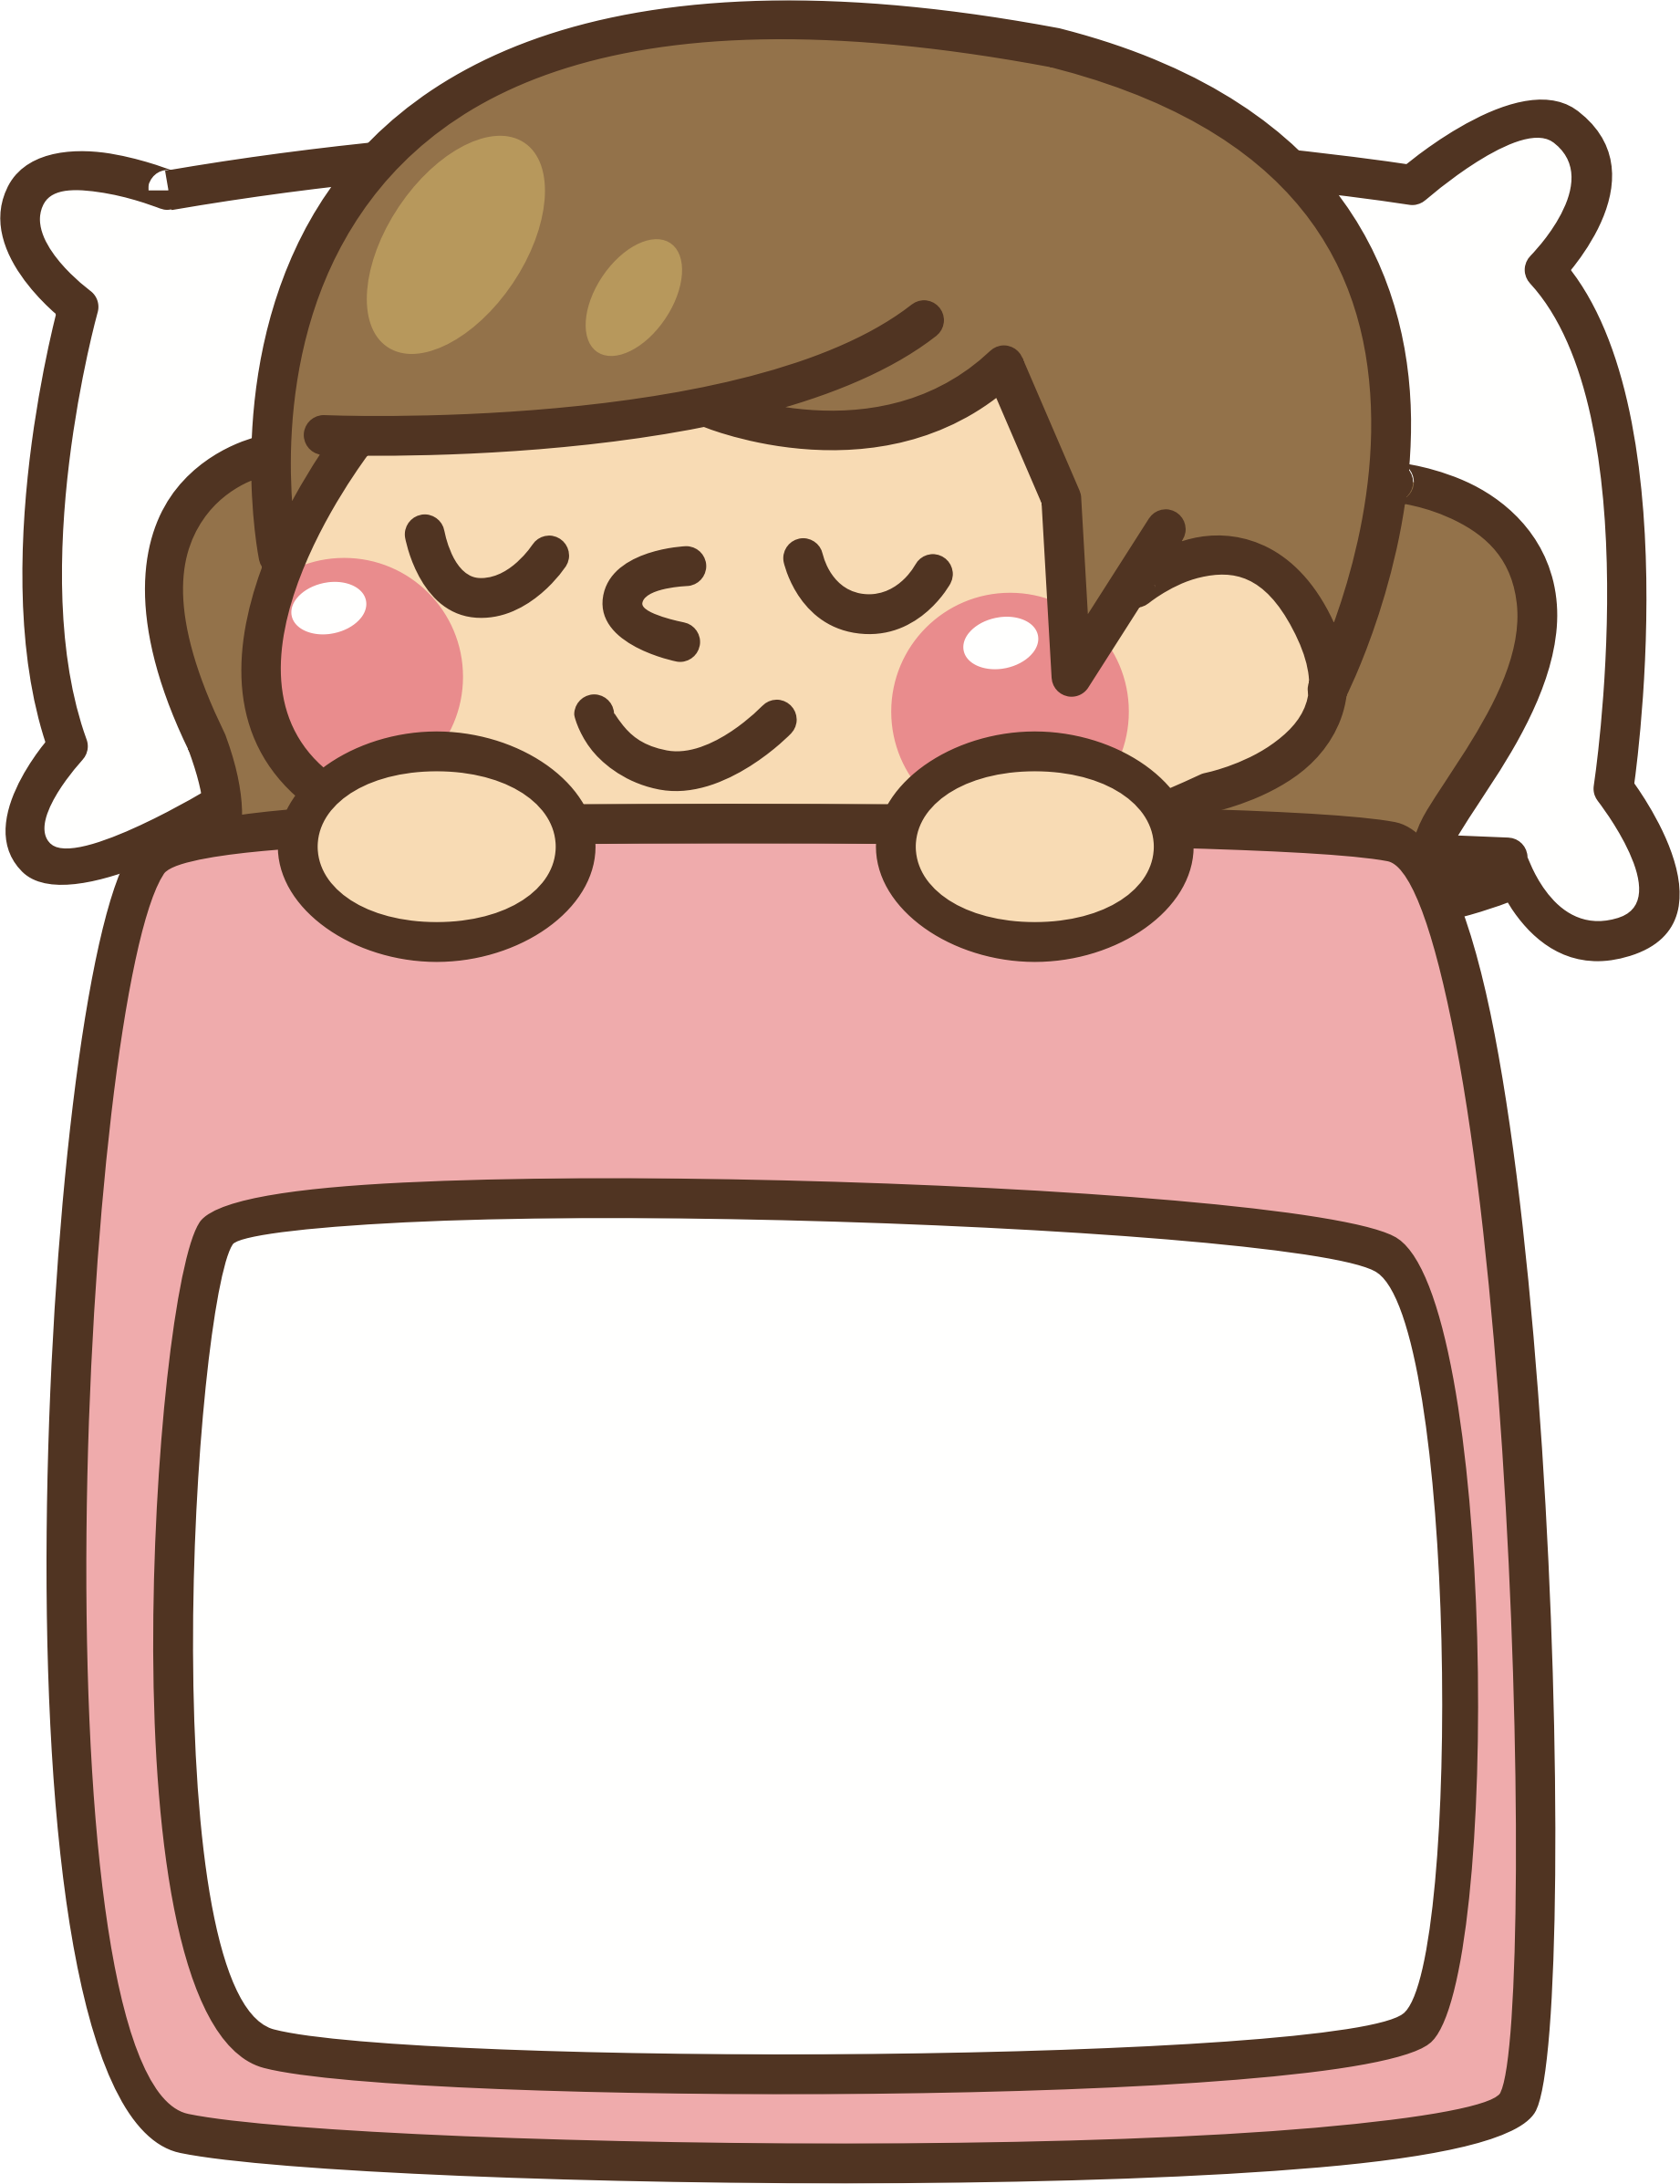 Big image png. Bed clipart bedtime